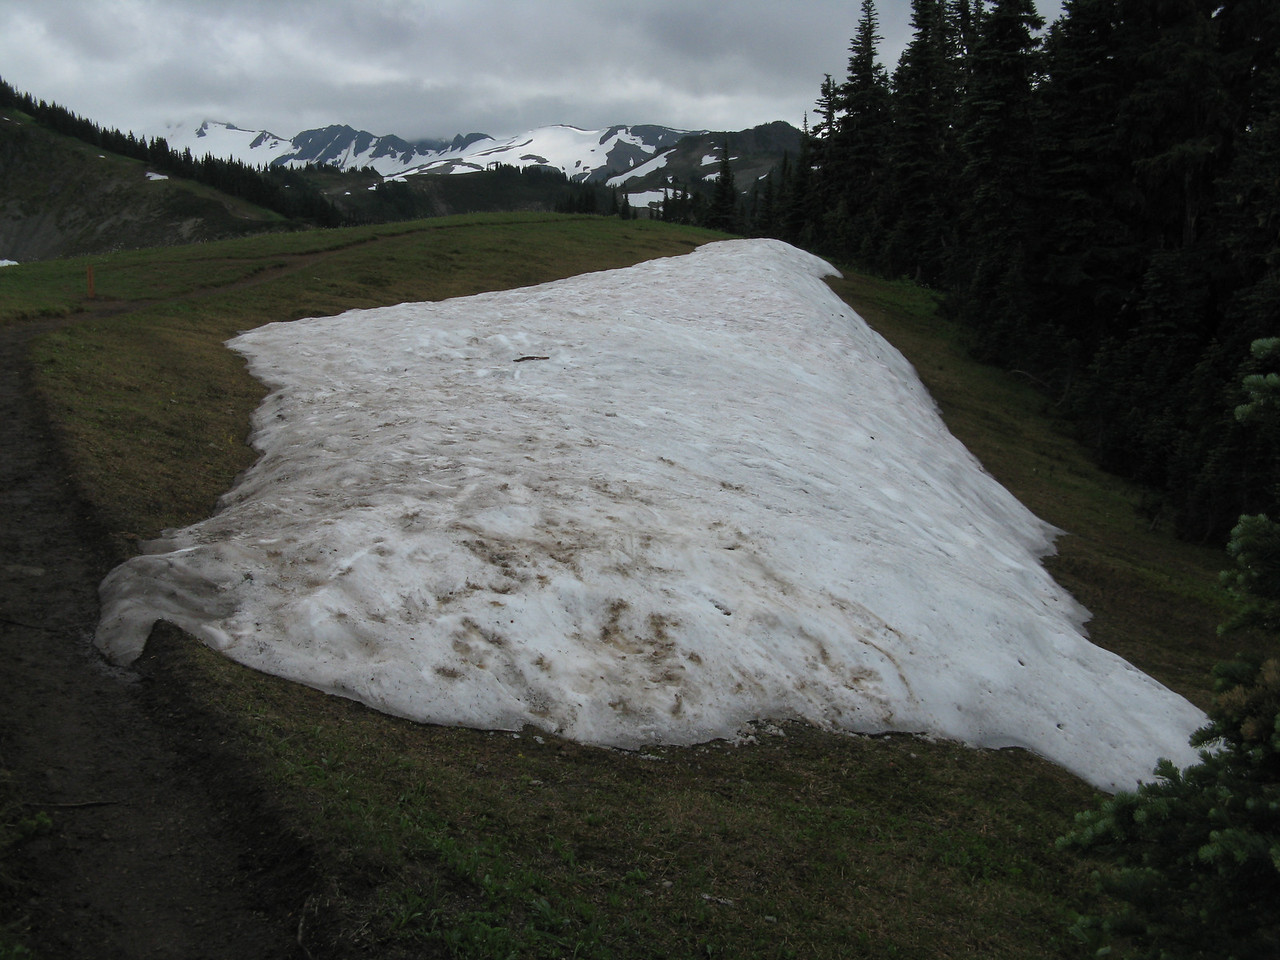 This patch of snow lays beside the trail as the path enters the meadow on the ridge.